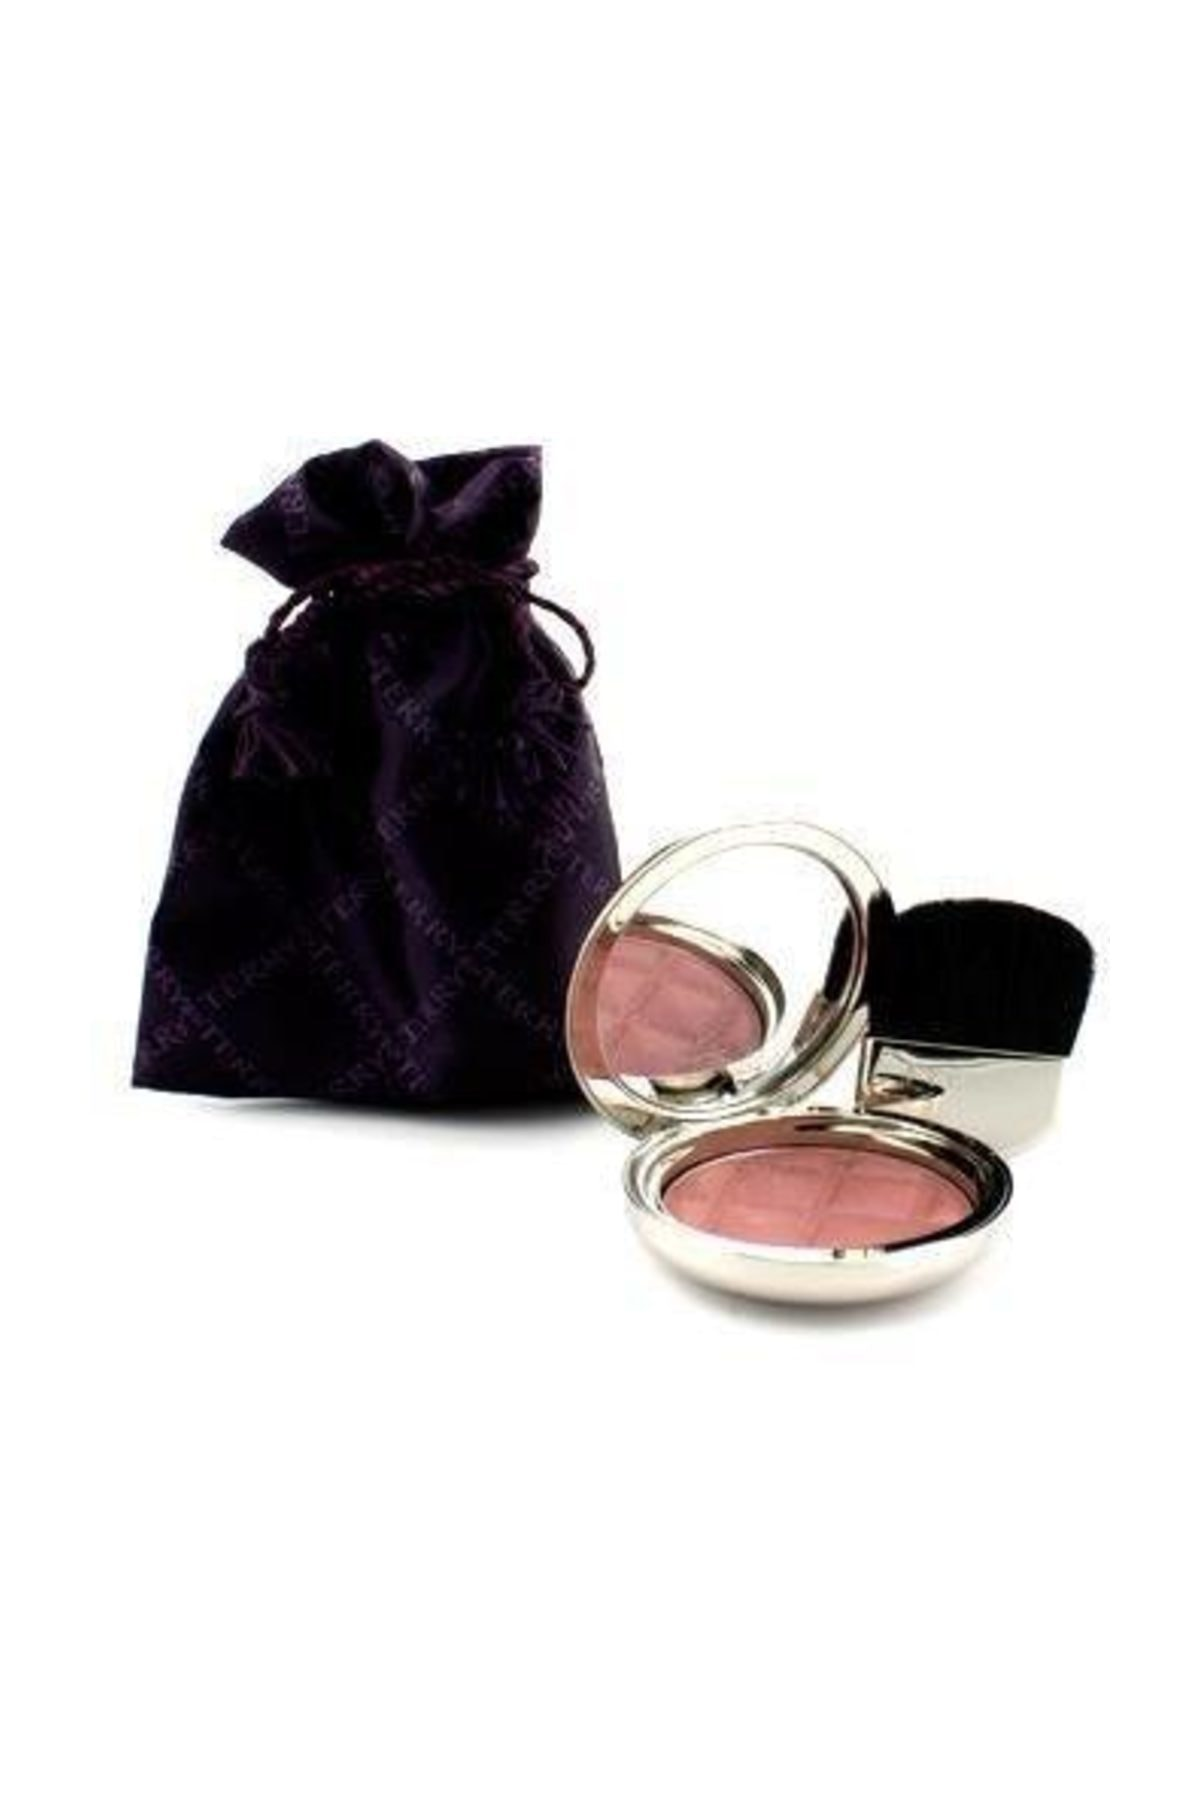 By Terry Blush Terrybly Ultimate Radiance Blush - #1 Cheek to Cheek Rose 5g/0.17oz